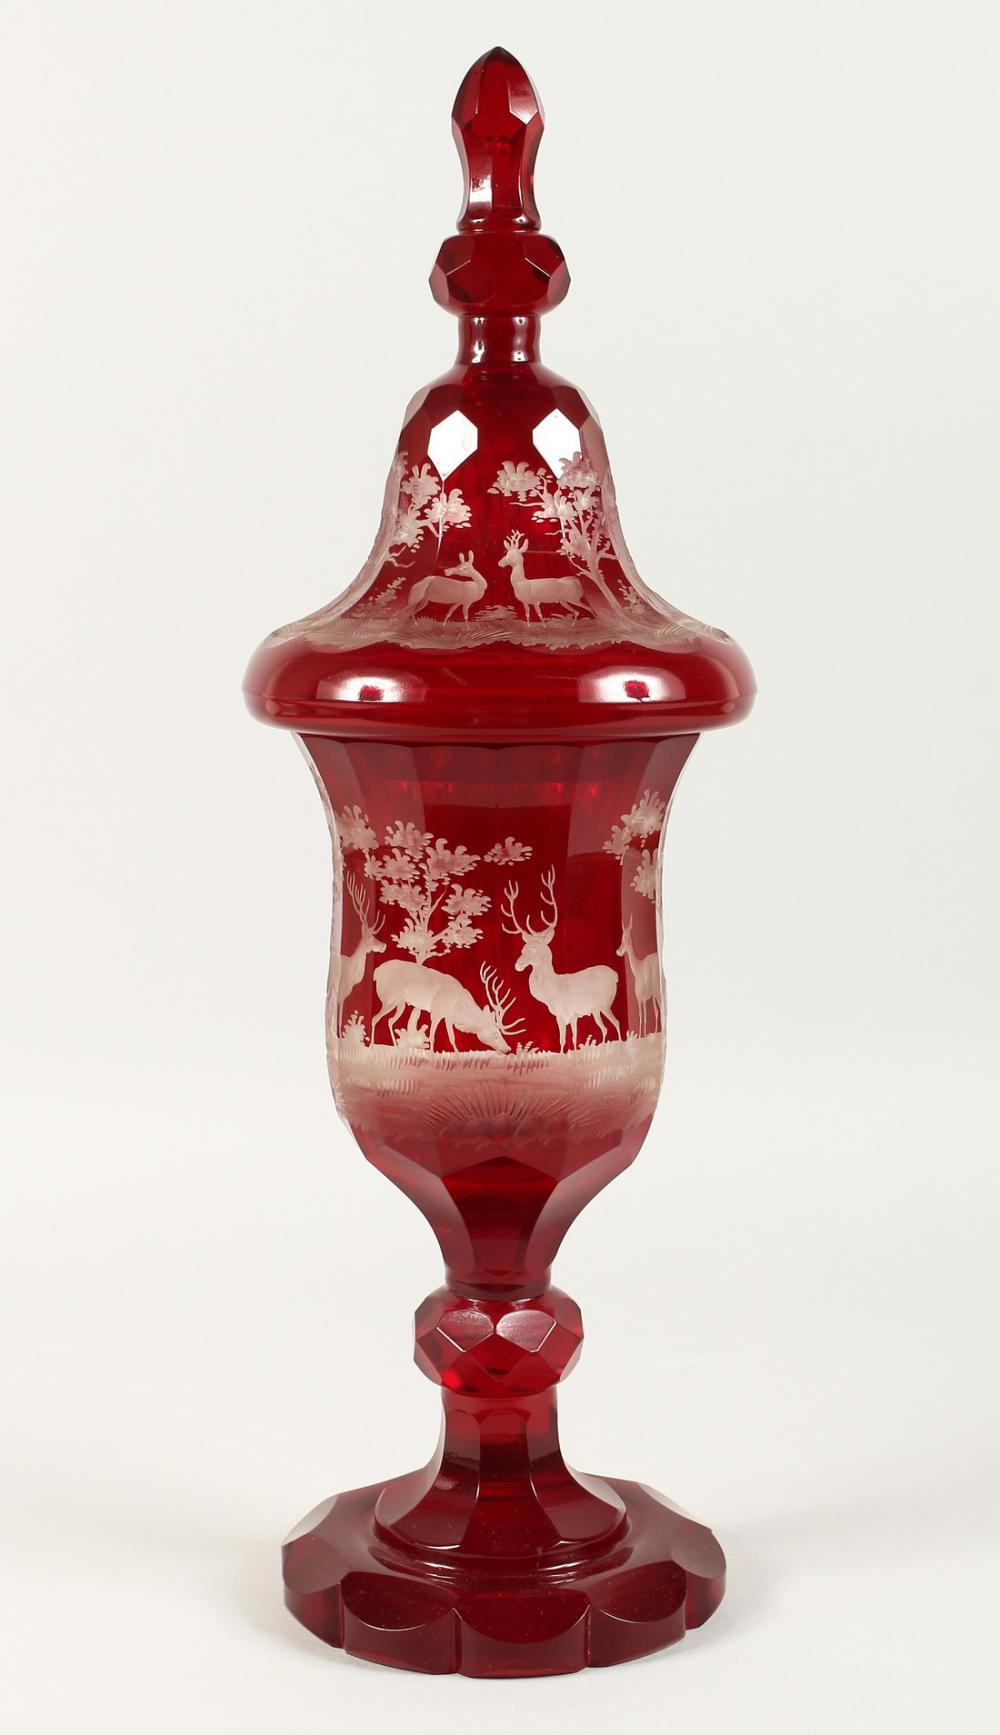 A SUPERB LARGE VICTORIAN BOHEMIAN RUBY GOBLET AND COVER etched with deer in a landscape. 20ins high.